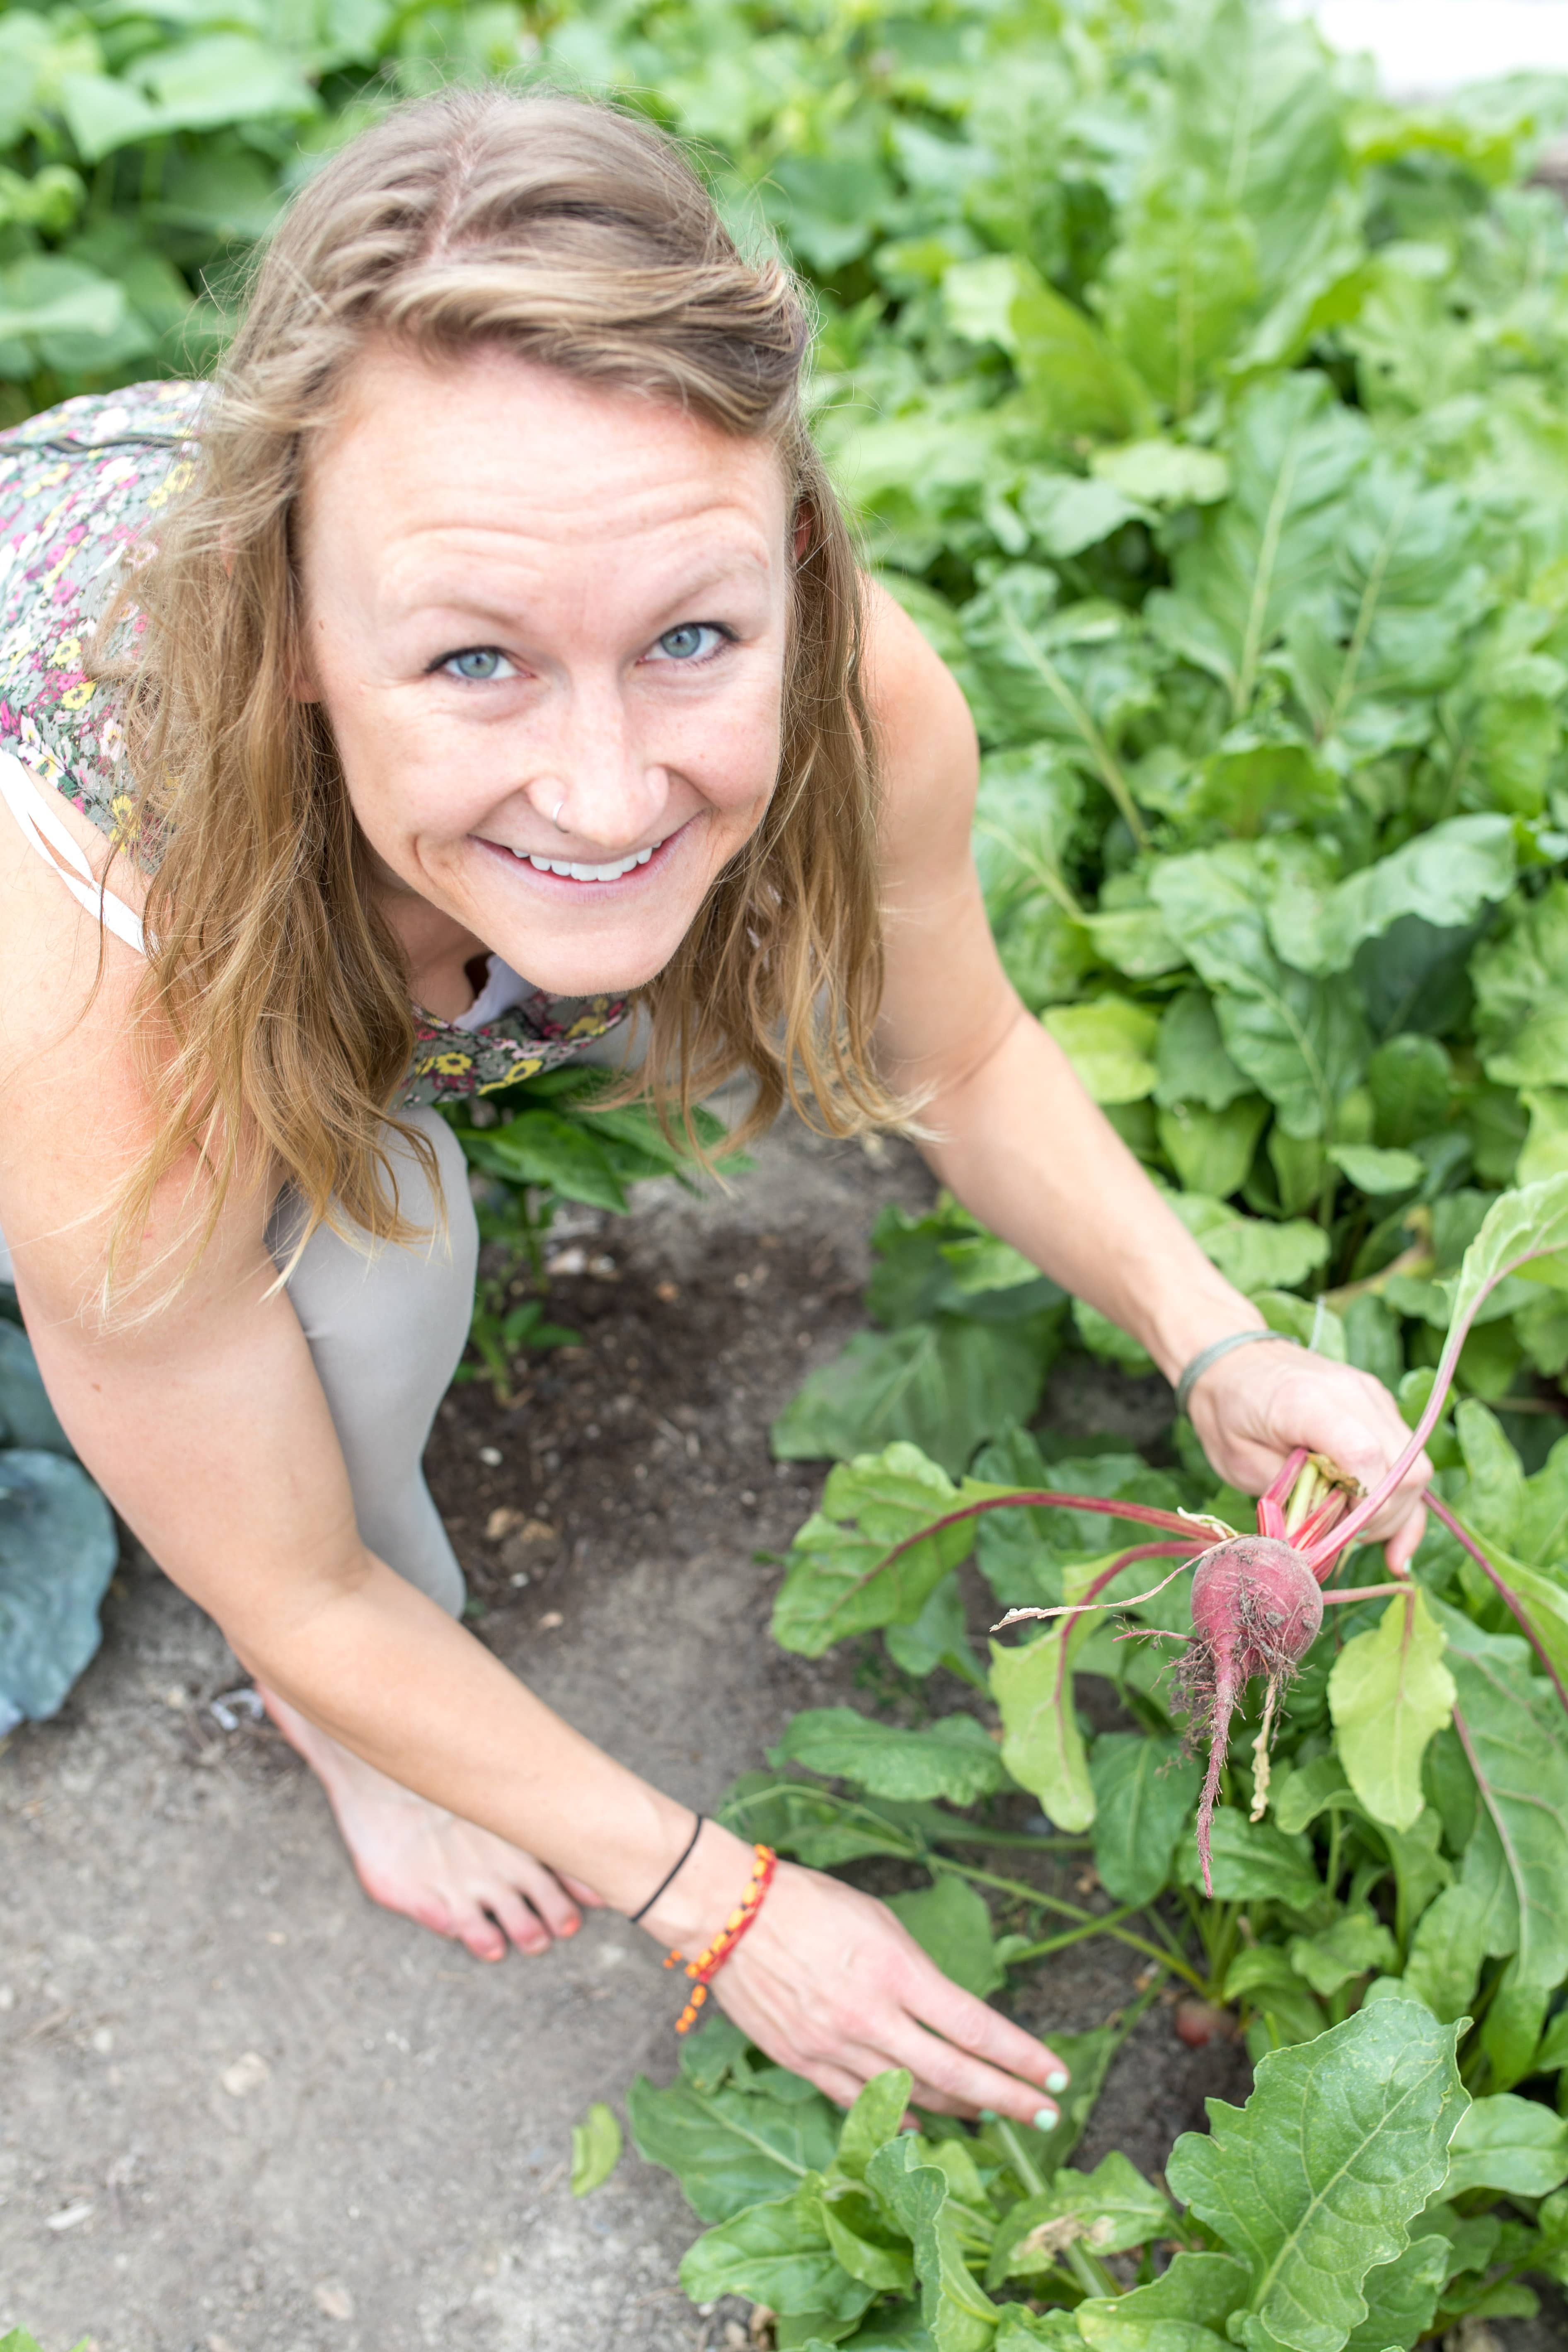 woman in garden holding beets